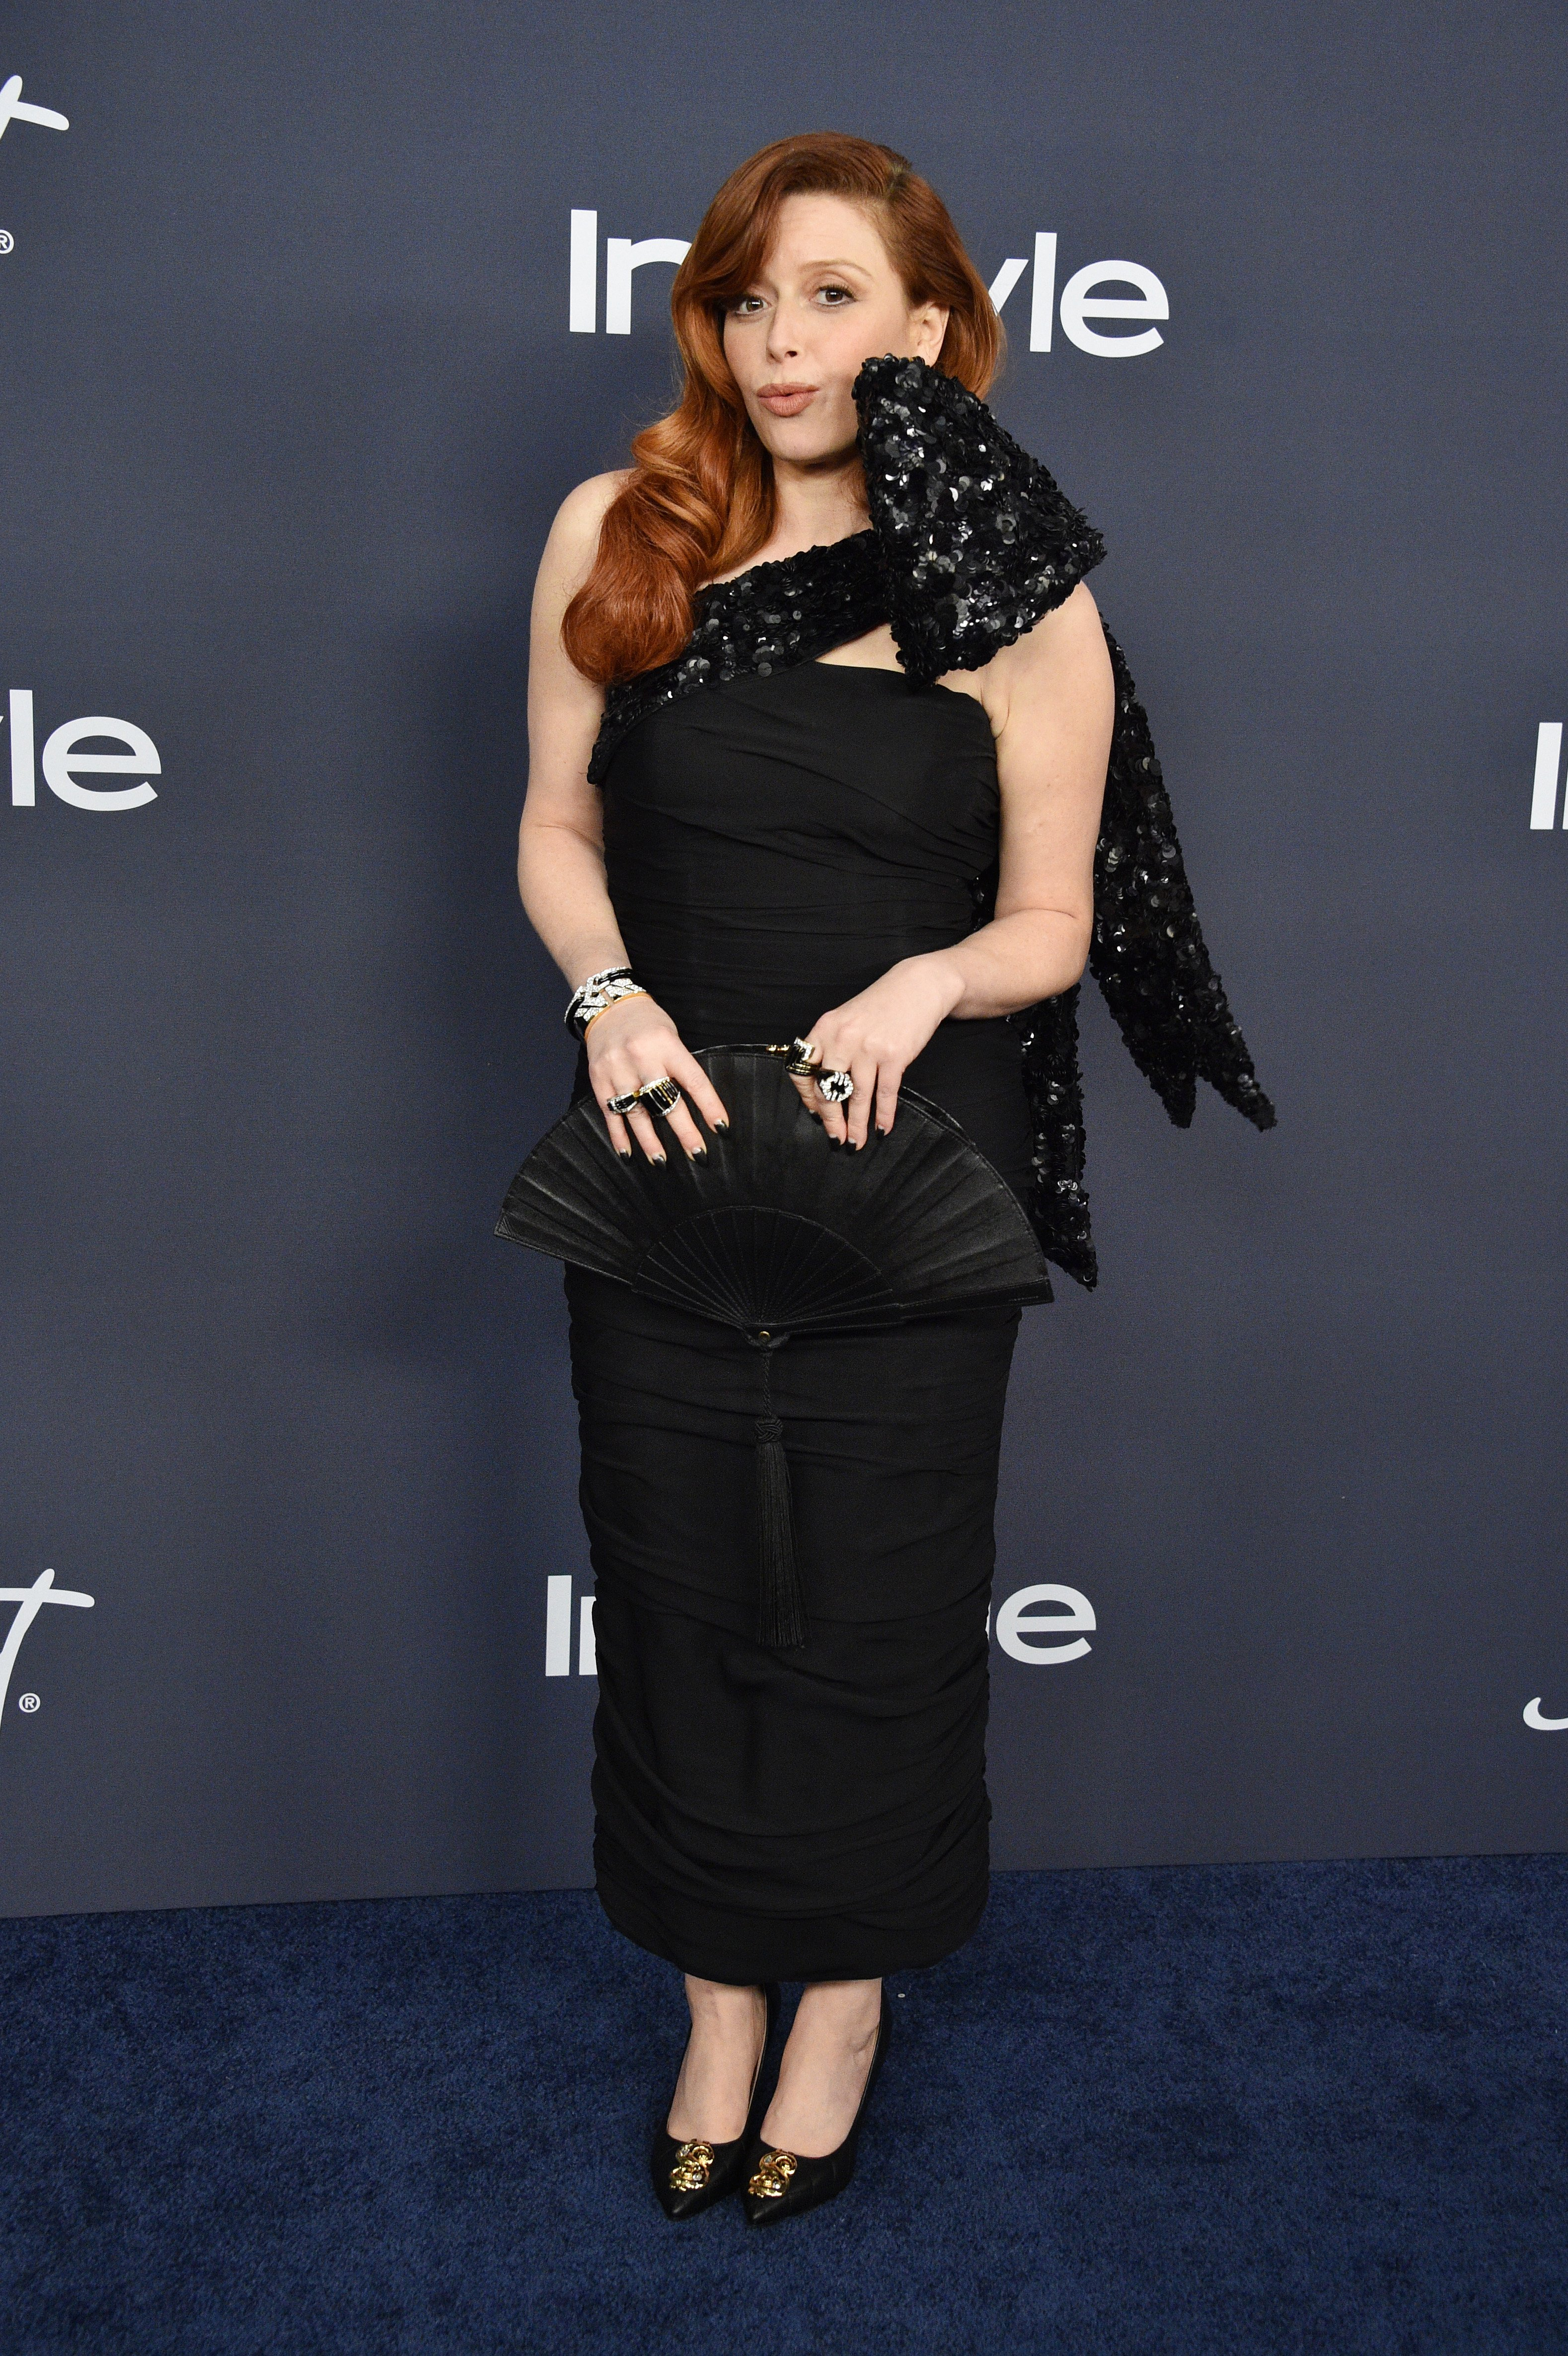 Image Source: Getty Images | Natasha in an event of In Style